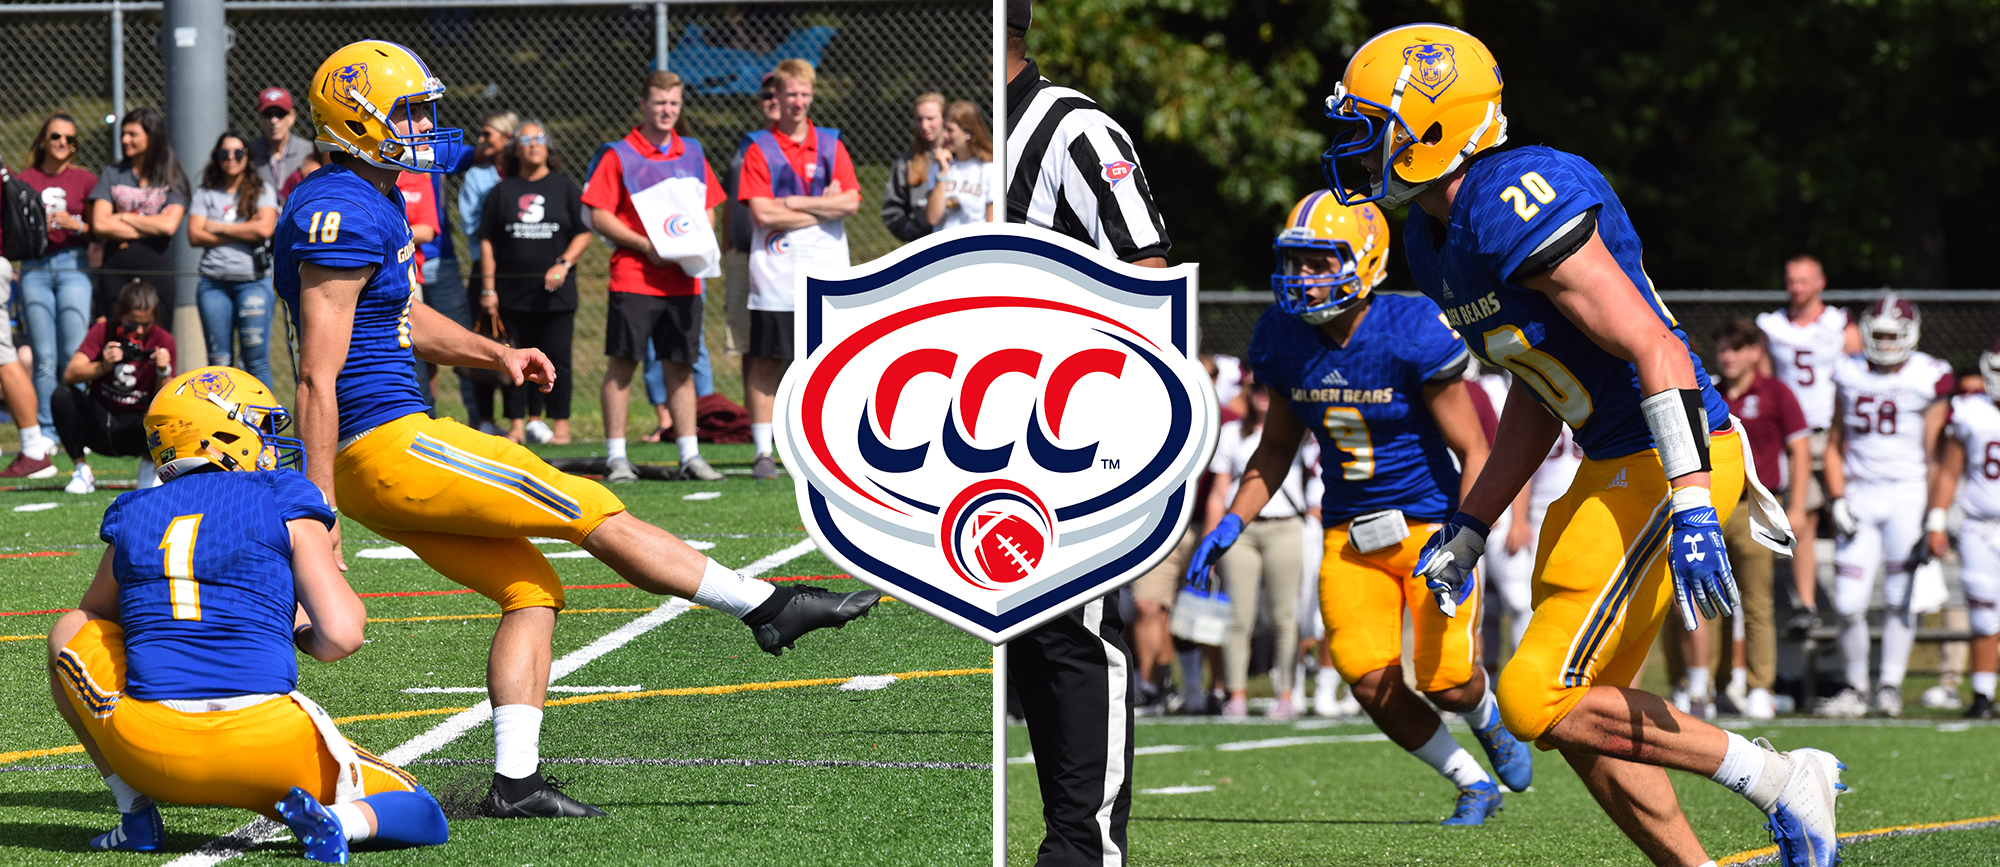 Kieran Lombard (left) and Bailey Devine-Scott (right) were recognized with weekly awards from CCC Football. (Photos by Rachael Margossian)